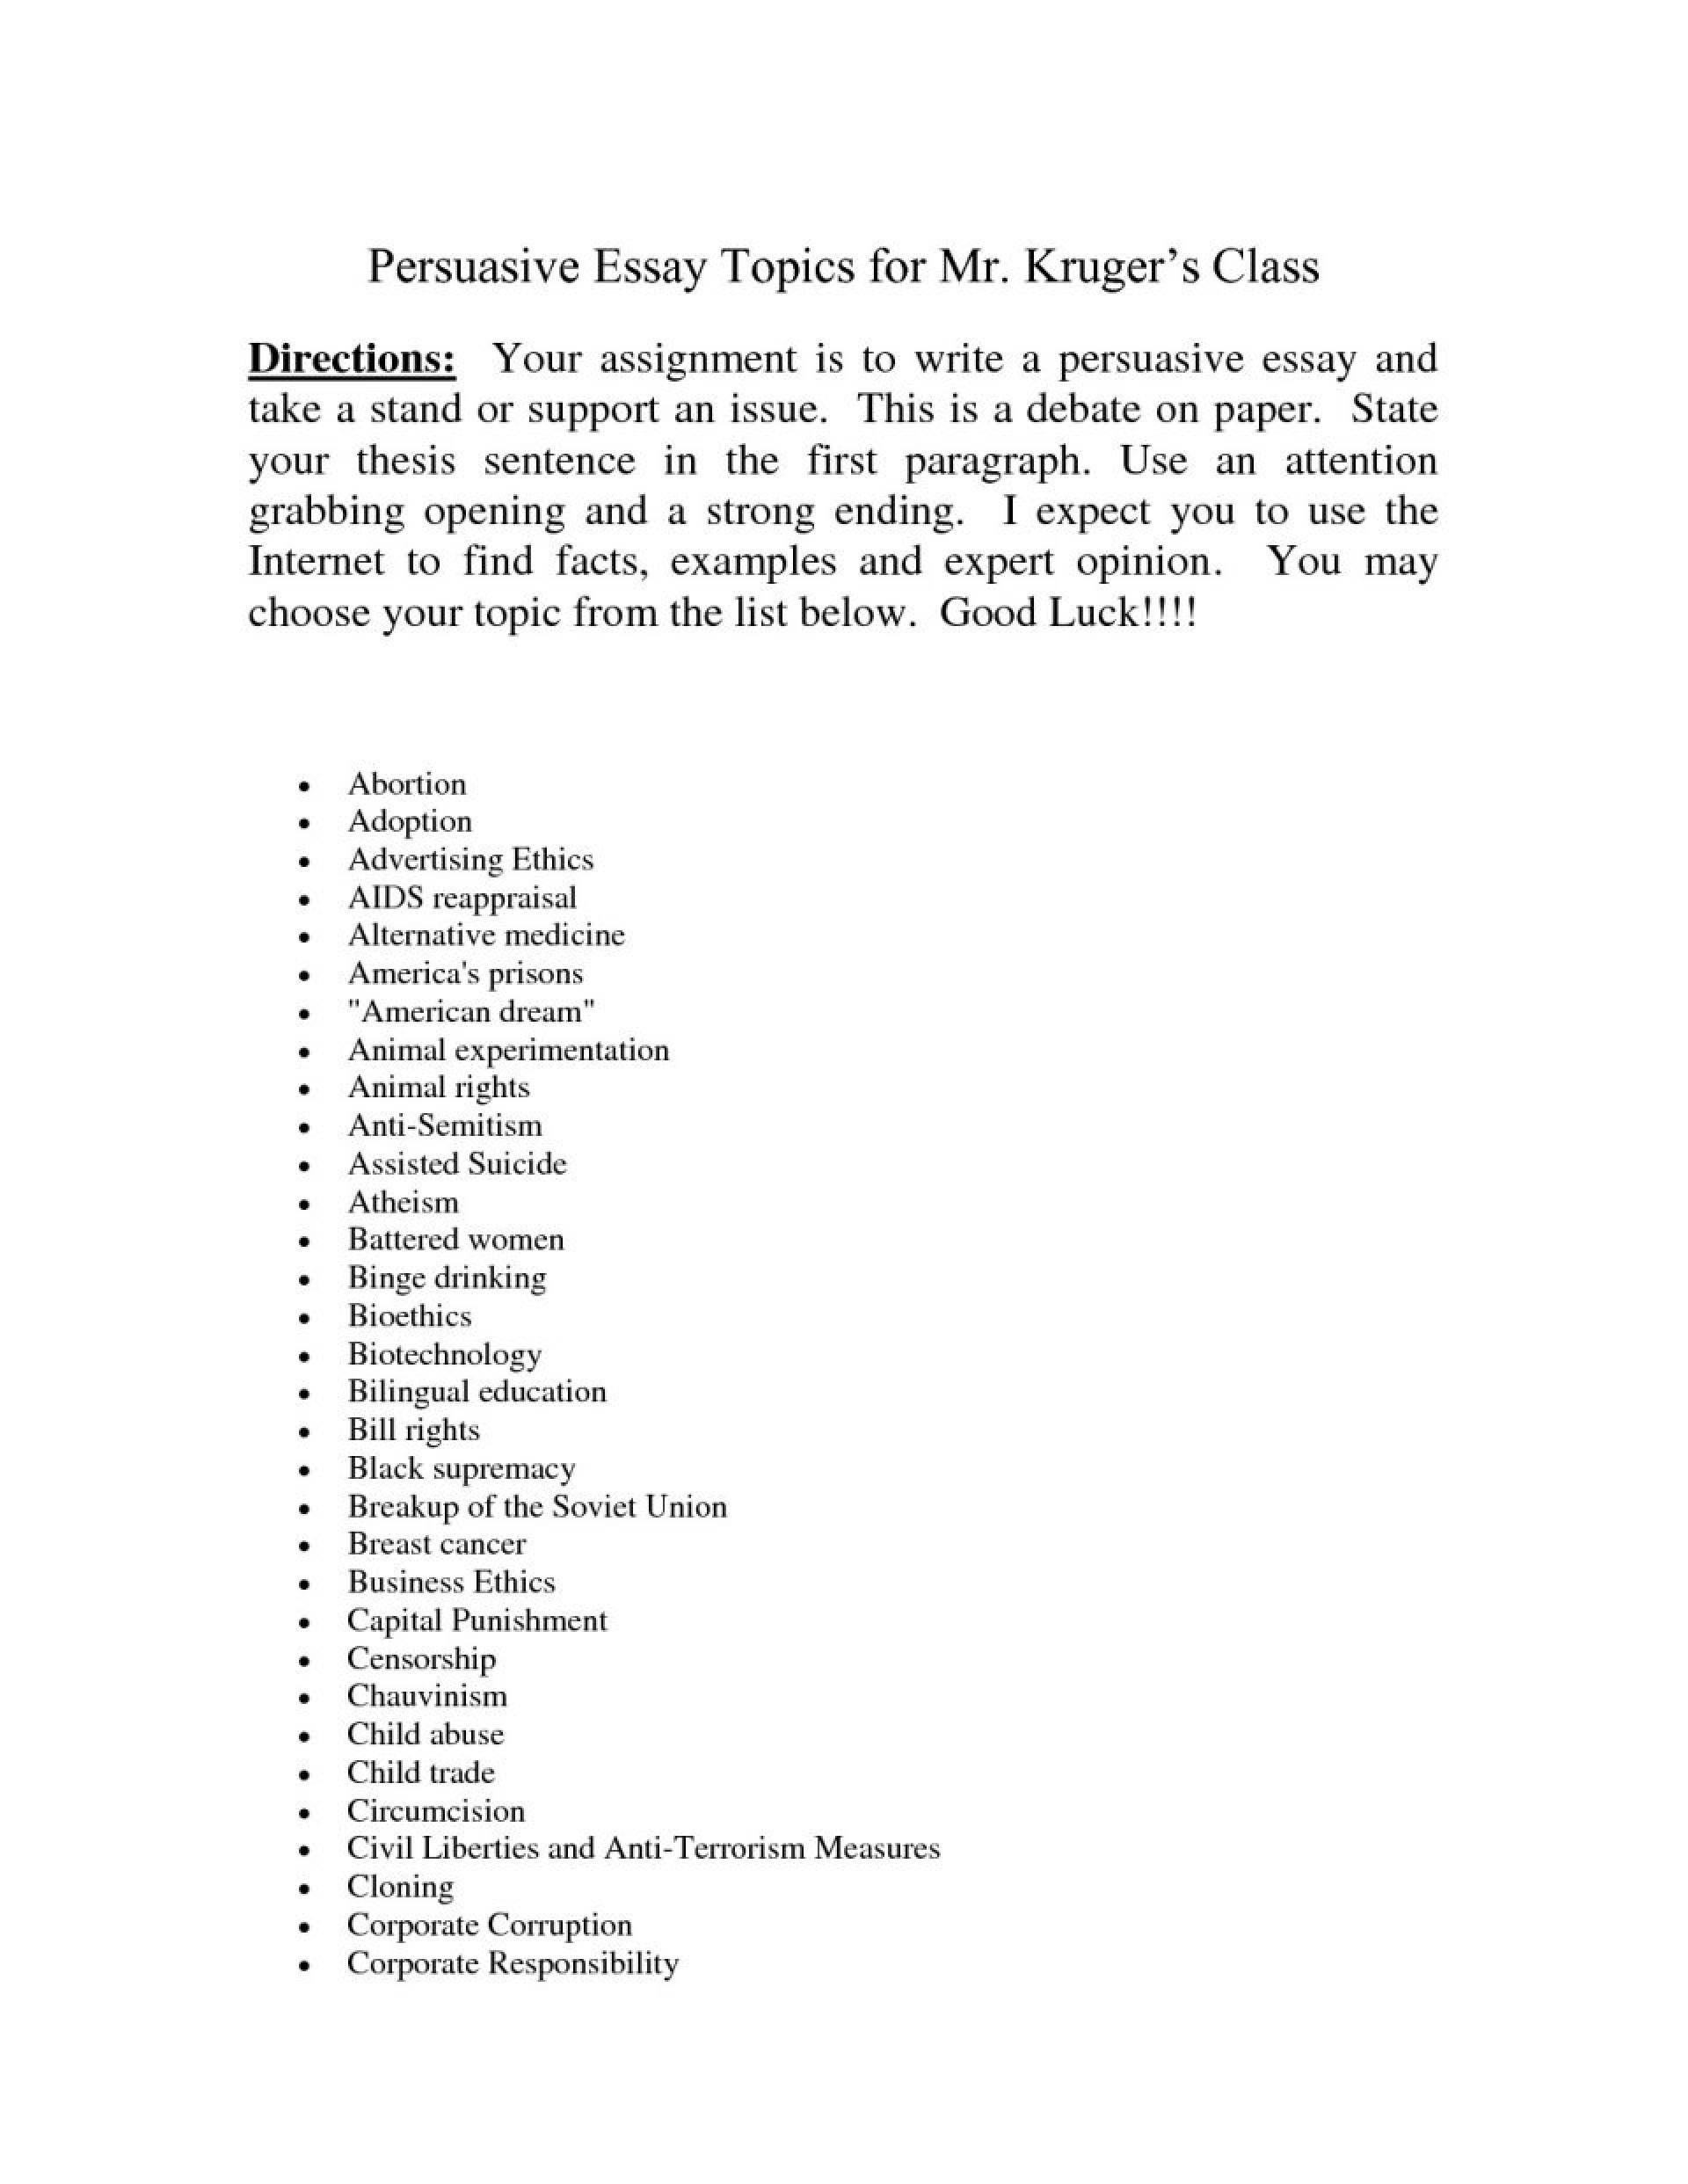 004 Research Paper Topic For Essay Barca Fontanacountryinn Within Good Persuasive Narrative Topics To Write Abo Easy About Personal Descriptive Informative Synthesis College 960x1242 Fearsome Education Majors Pdf In Physical 1920